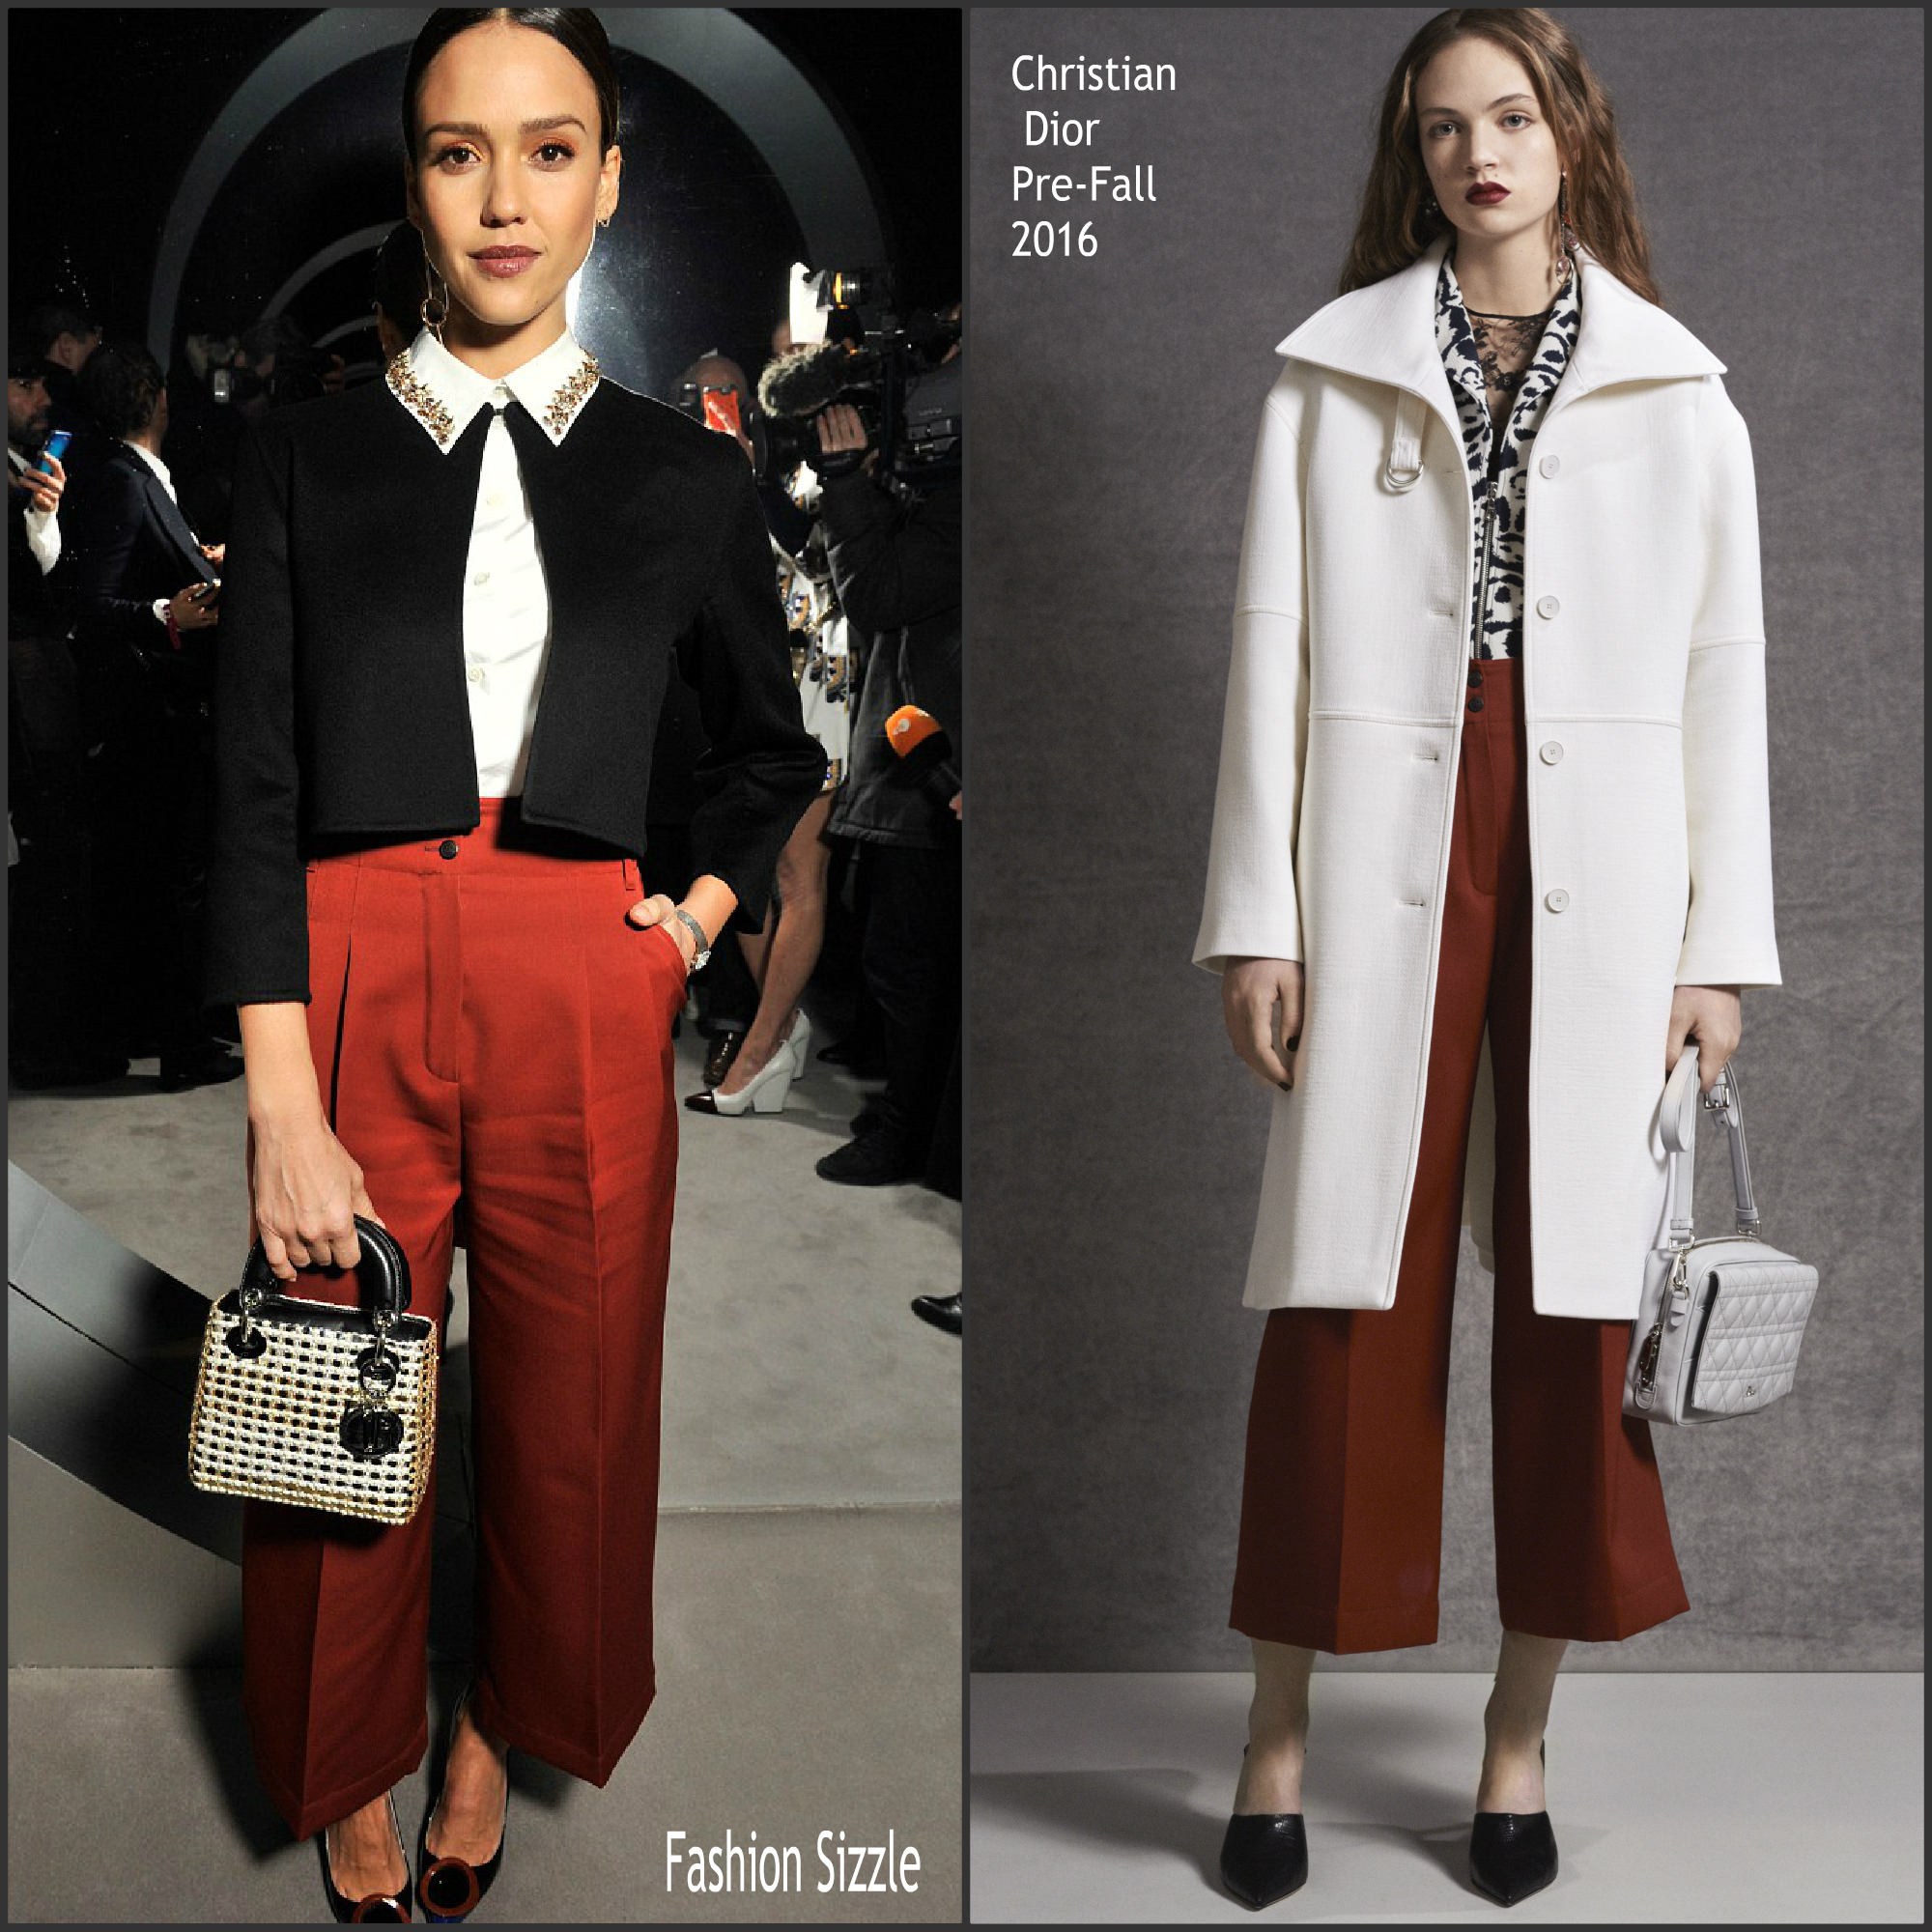 jessica-alba-in-christian-dior-dior-fall-winter-2016-paris-fashionweek-show